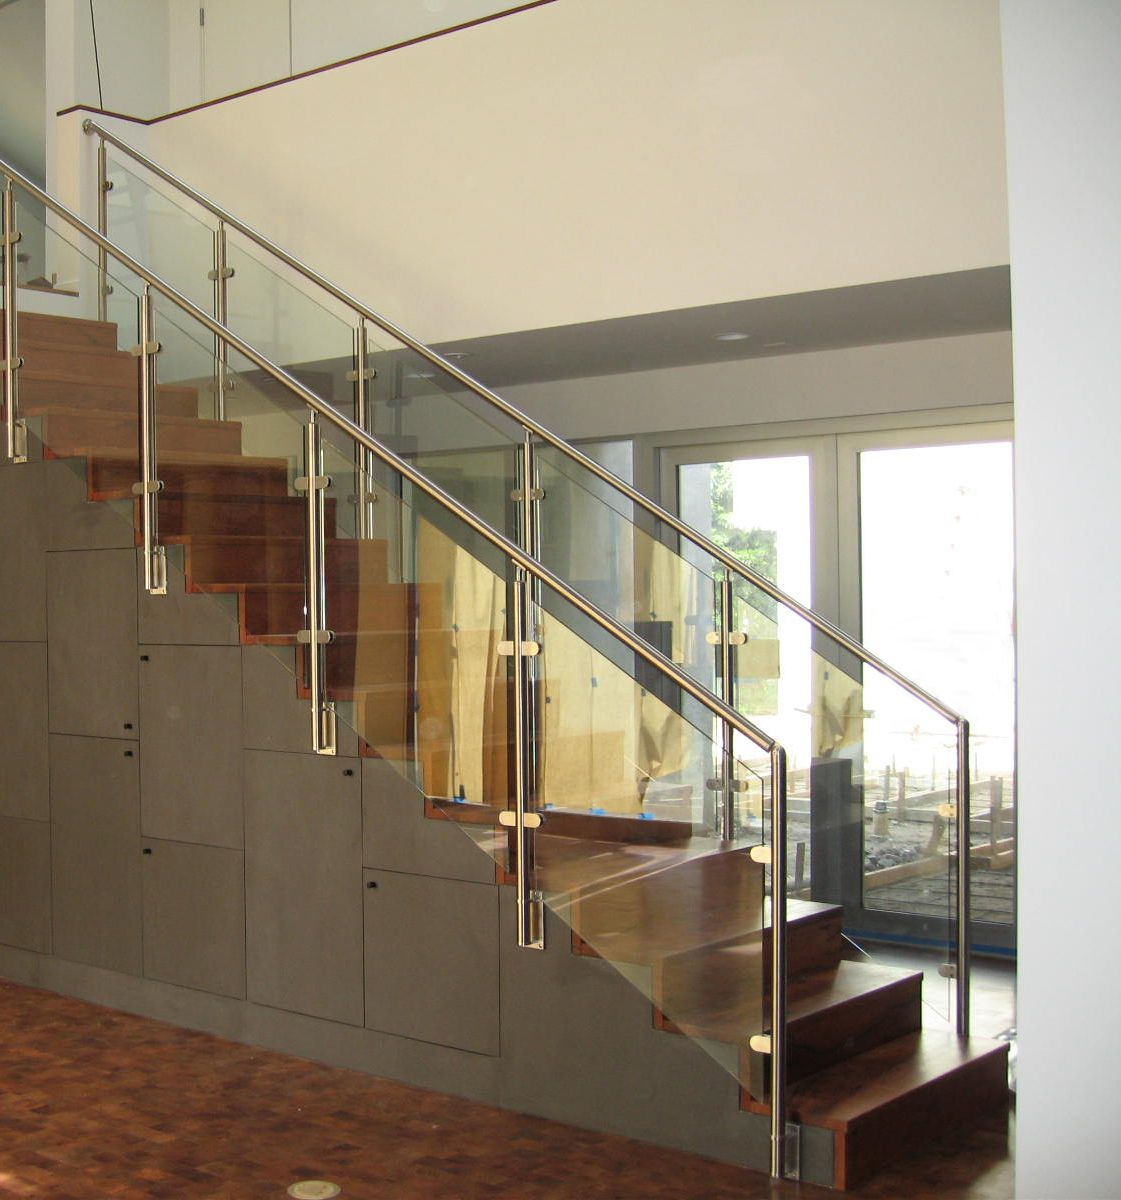 Balustrade Tangga Our Stainless Railing With Rounded Glass Clamps Make This